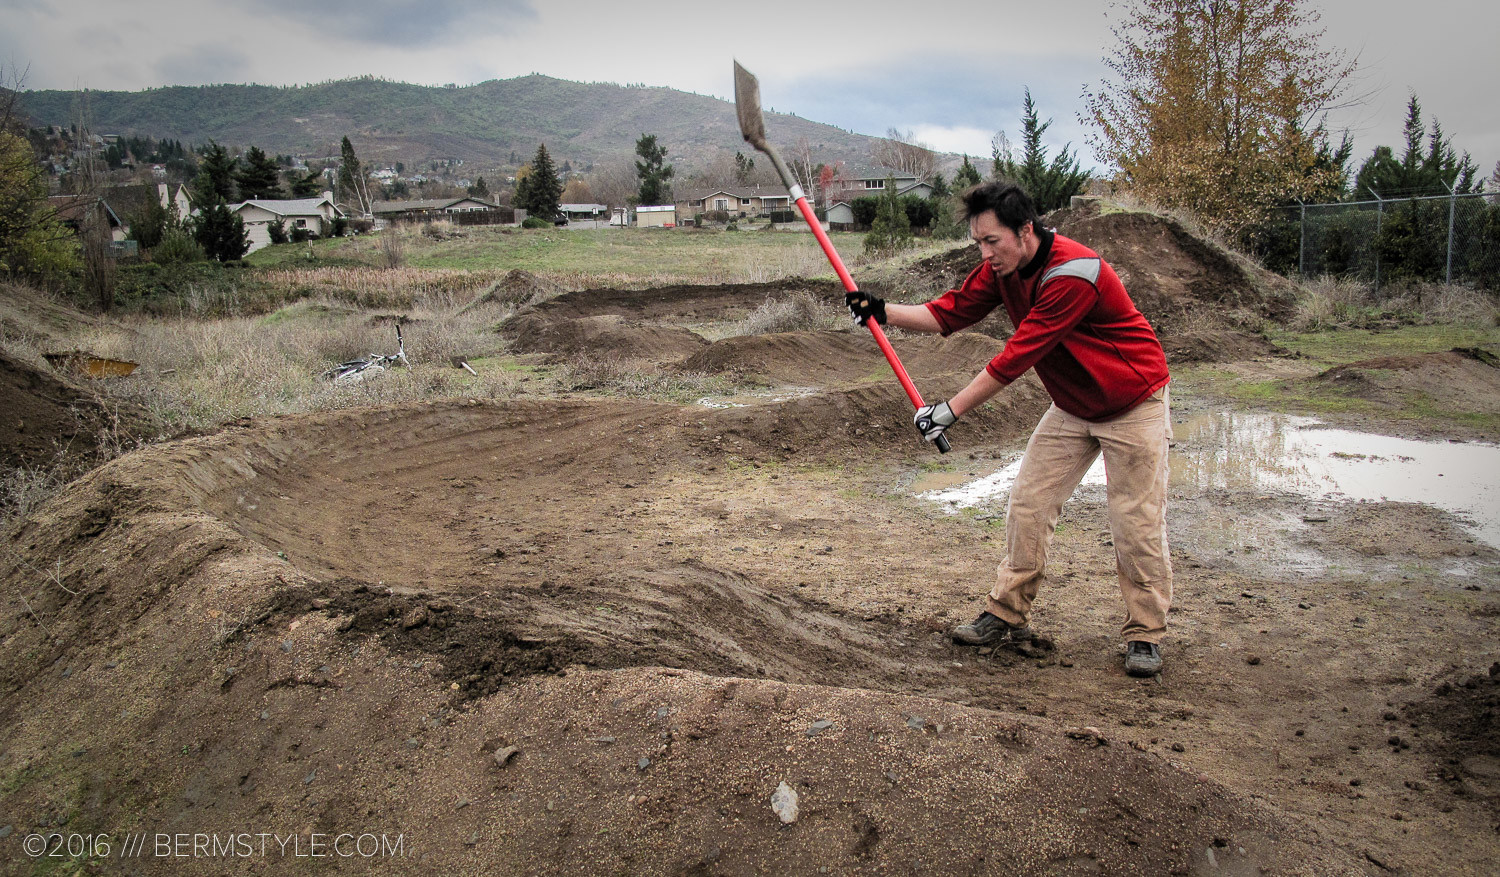 Working on a pump track in Ashland, Oregon. 2010.